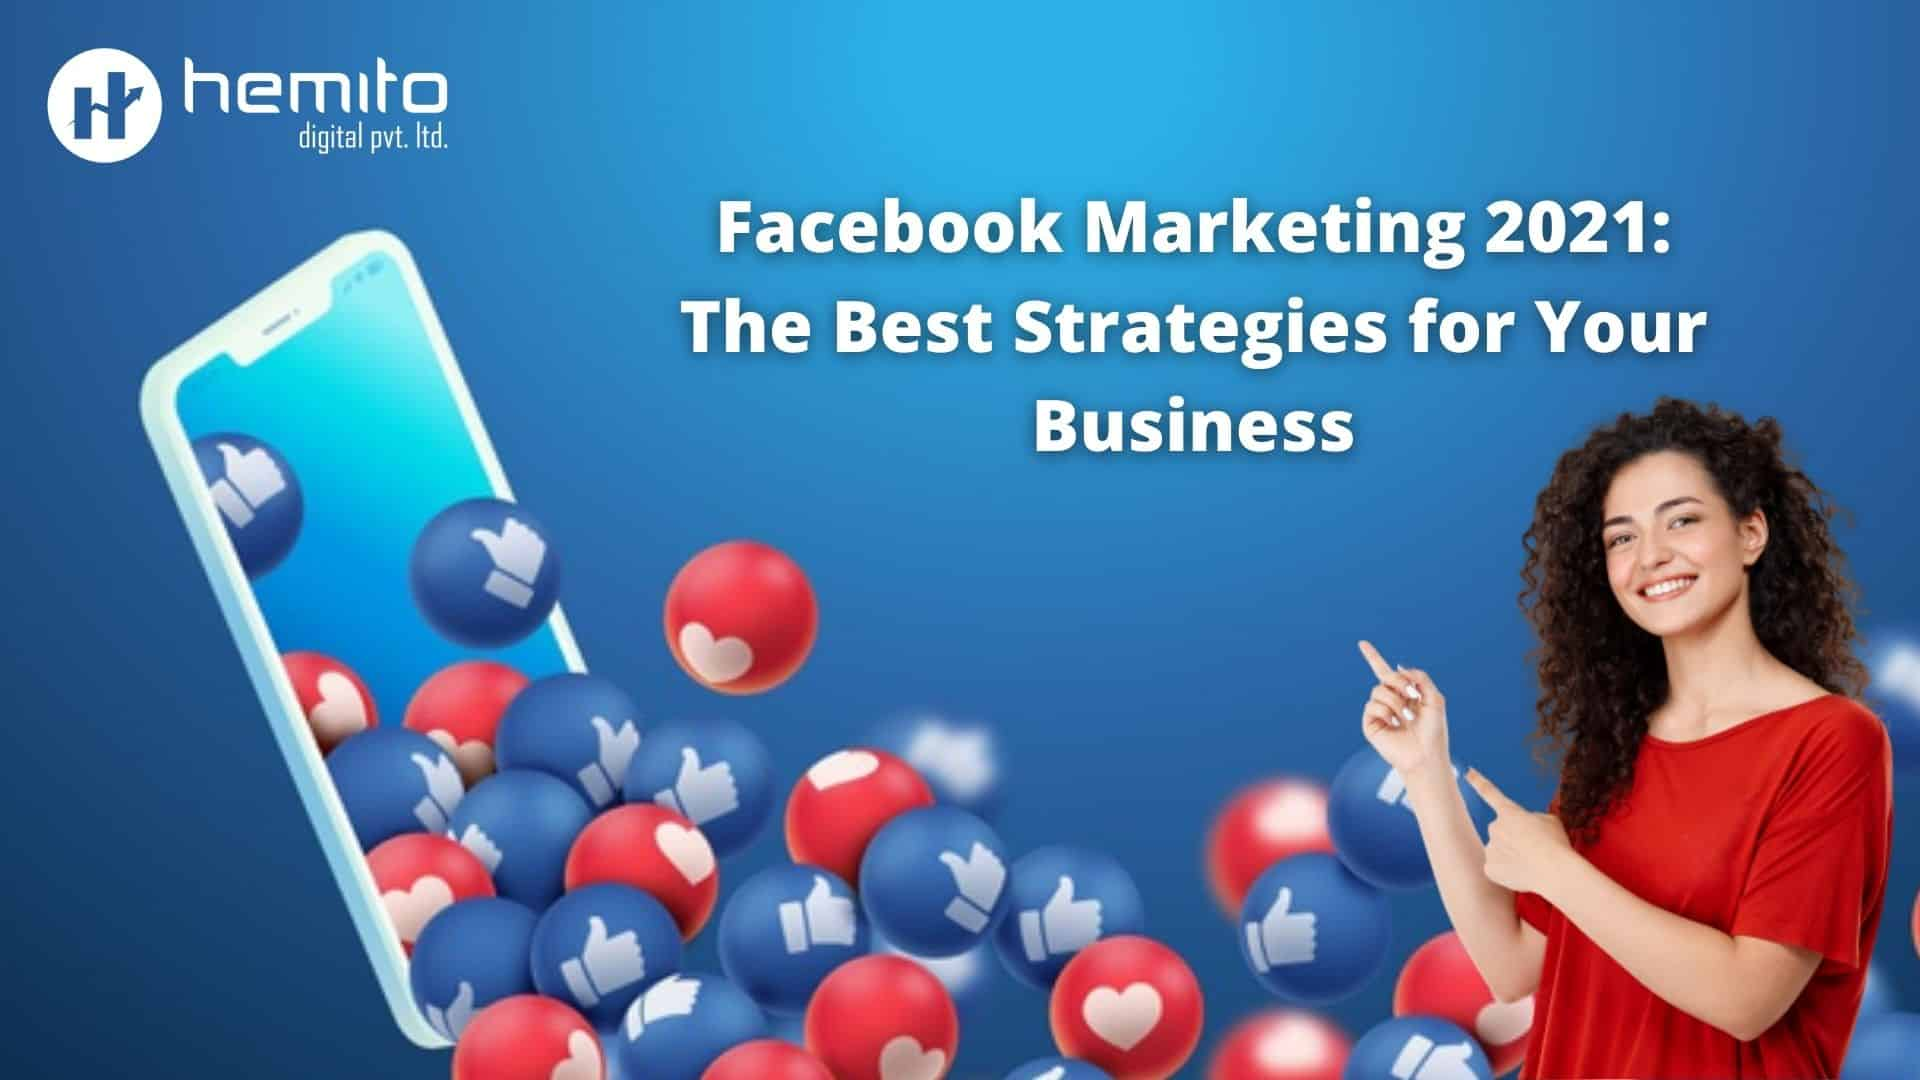 Facebook Marketing 2021: The Best Strategies for Your Business